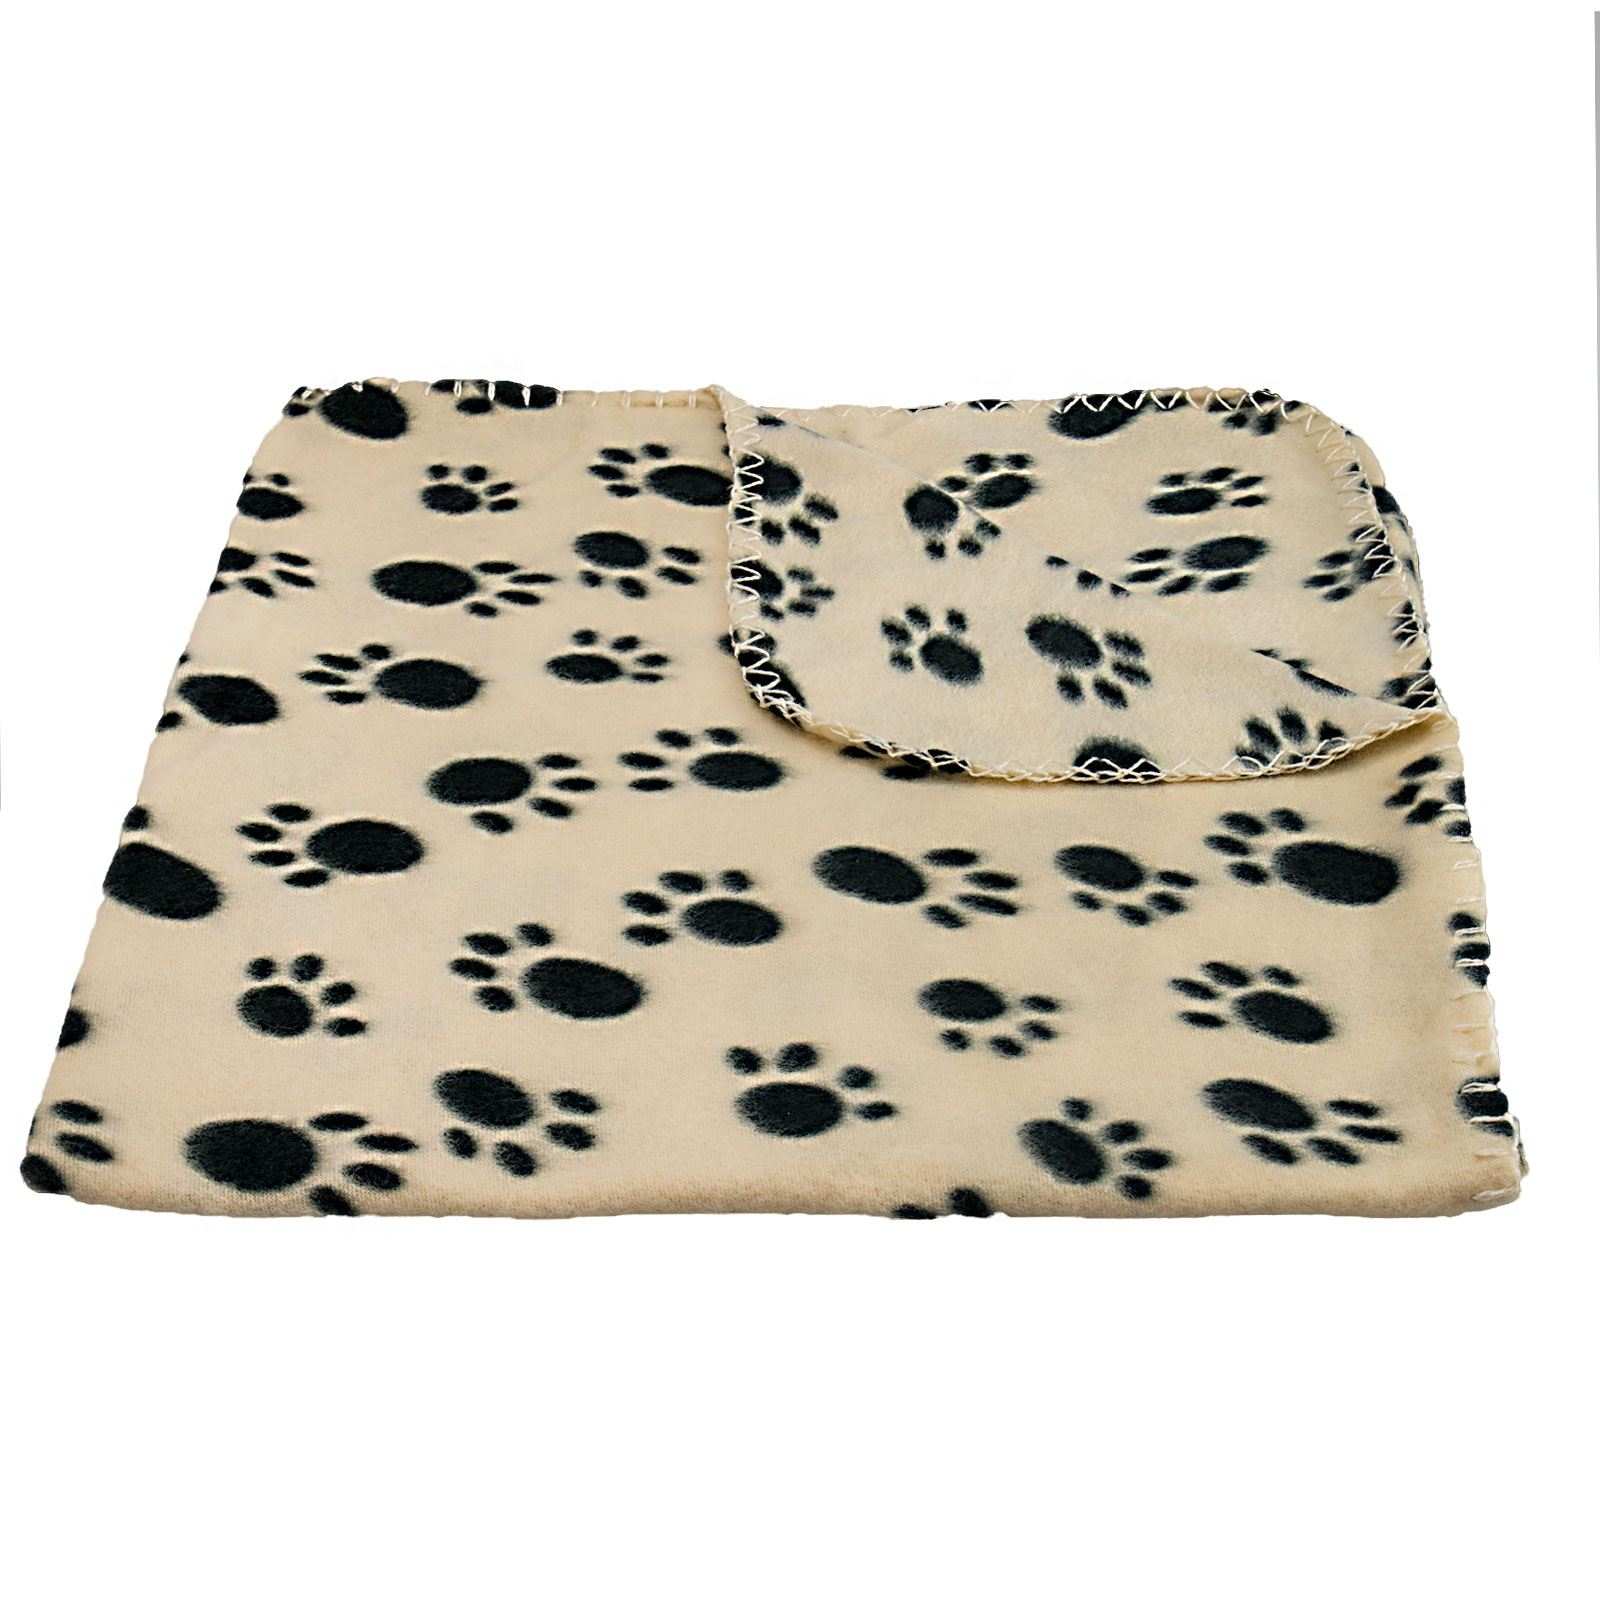 Pet-Blanket-Dogs-amp-Puppy-Cat-Paw-Print-Soft-Warm-Fleece-Bed-Travel-Basket-Car thumbnail 6